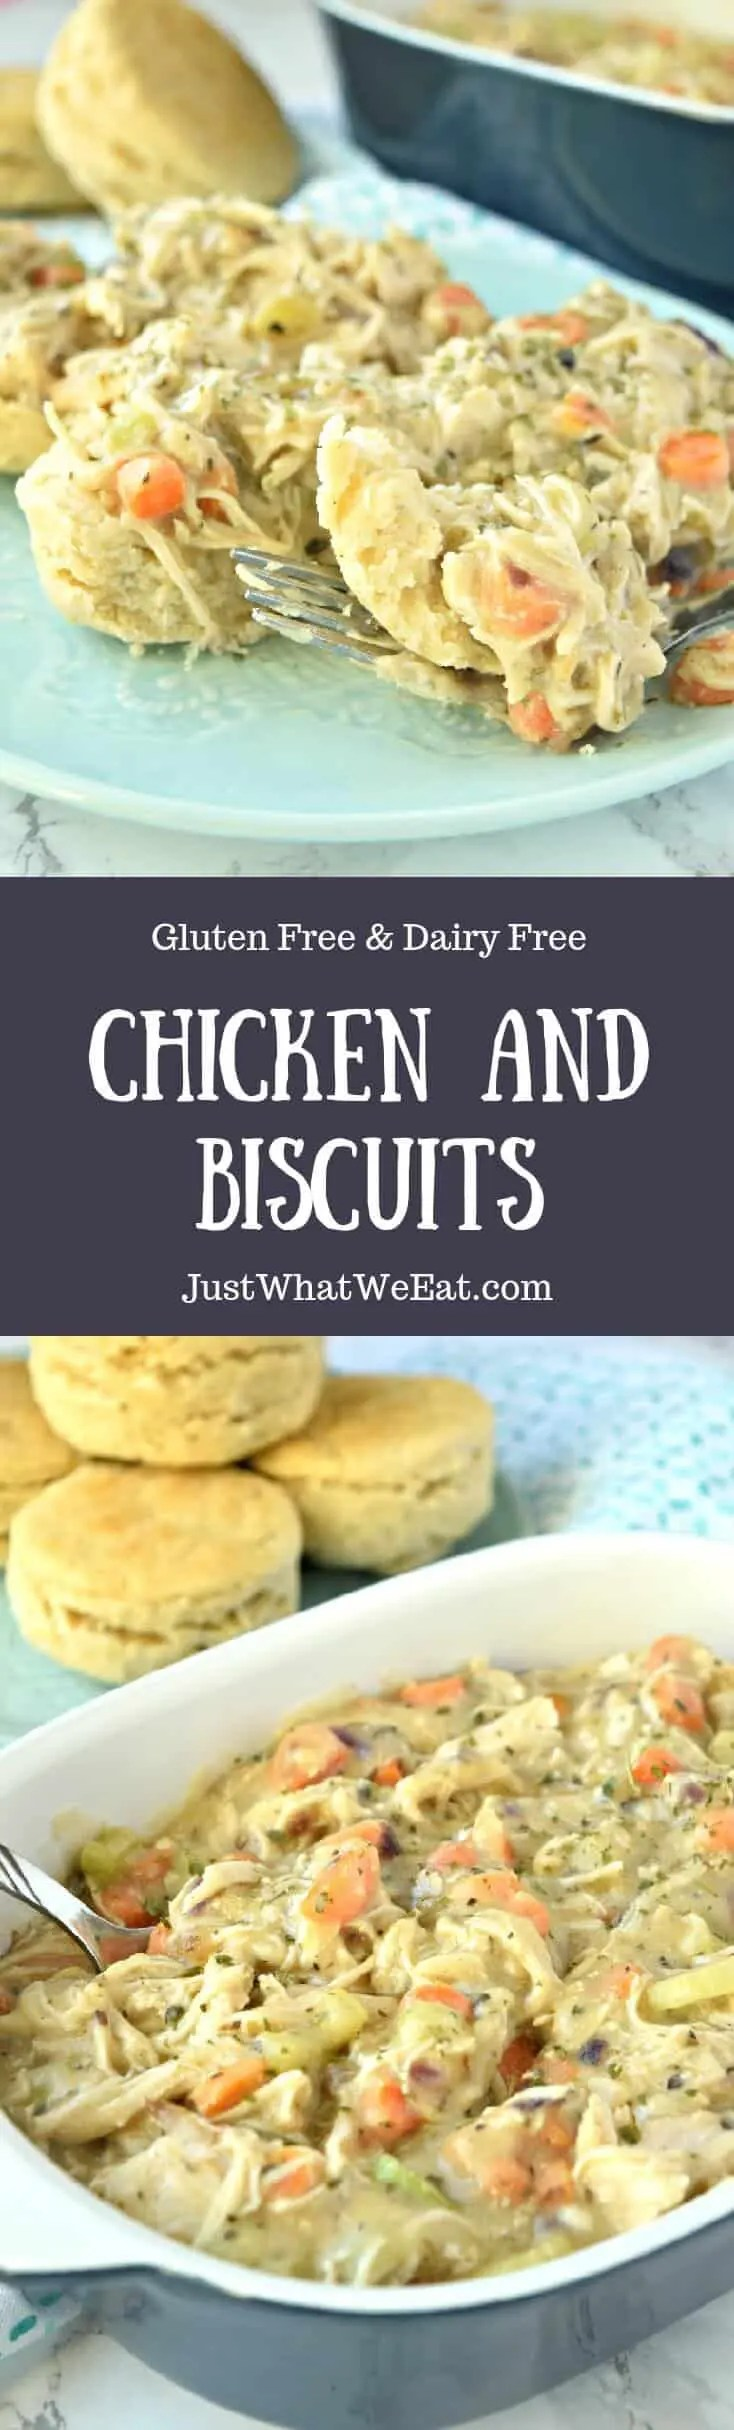 Chicken and Biscuits - Gluten free & Dairy Free